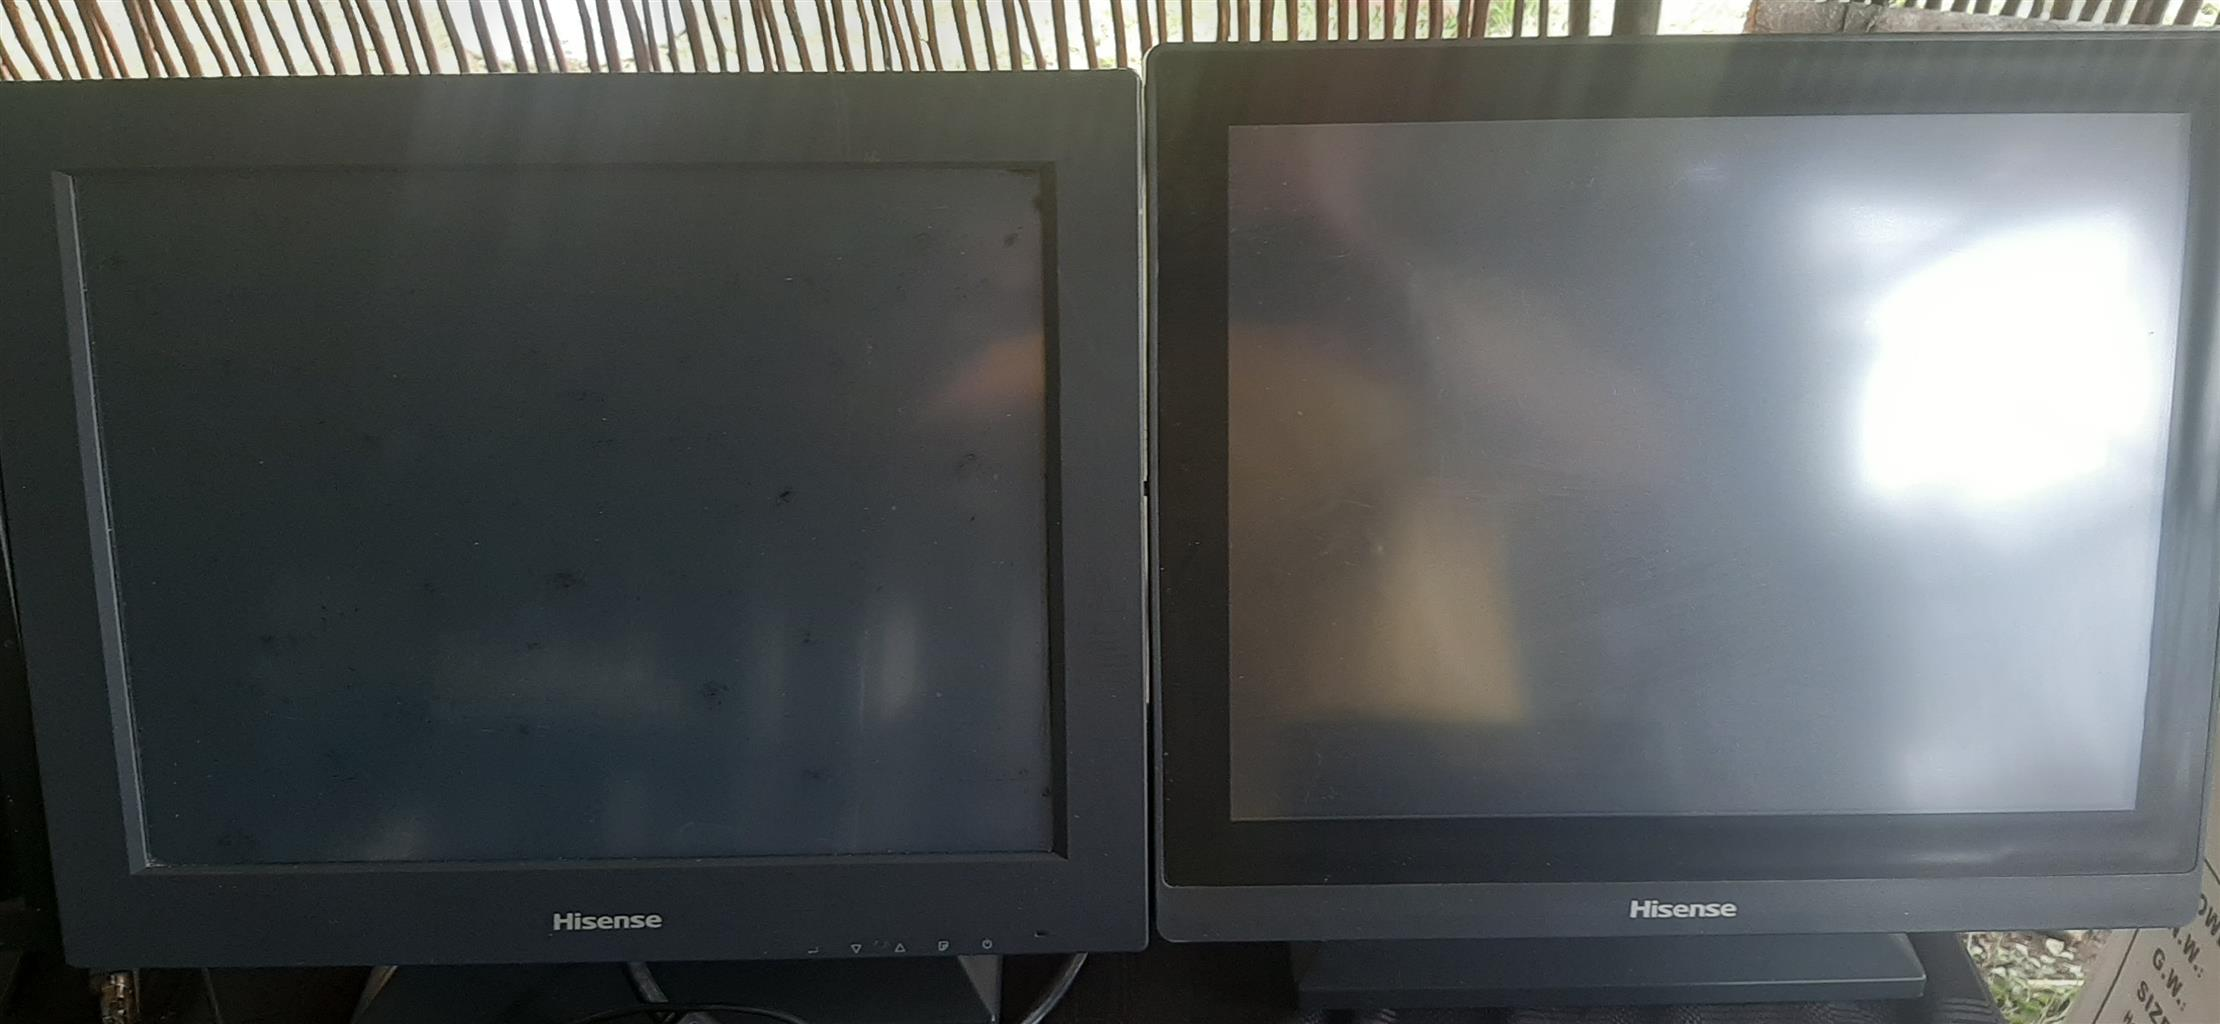 VARIOUS POS ITEMS FOR SALE